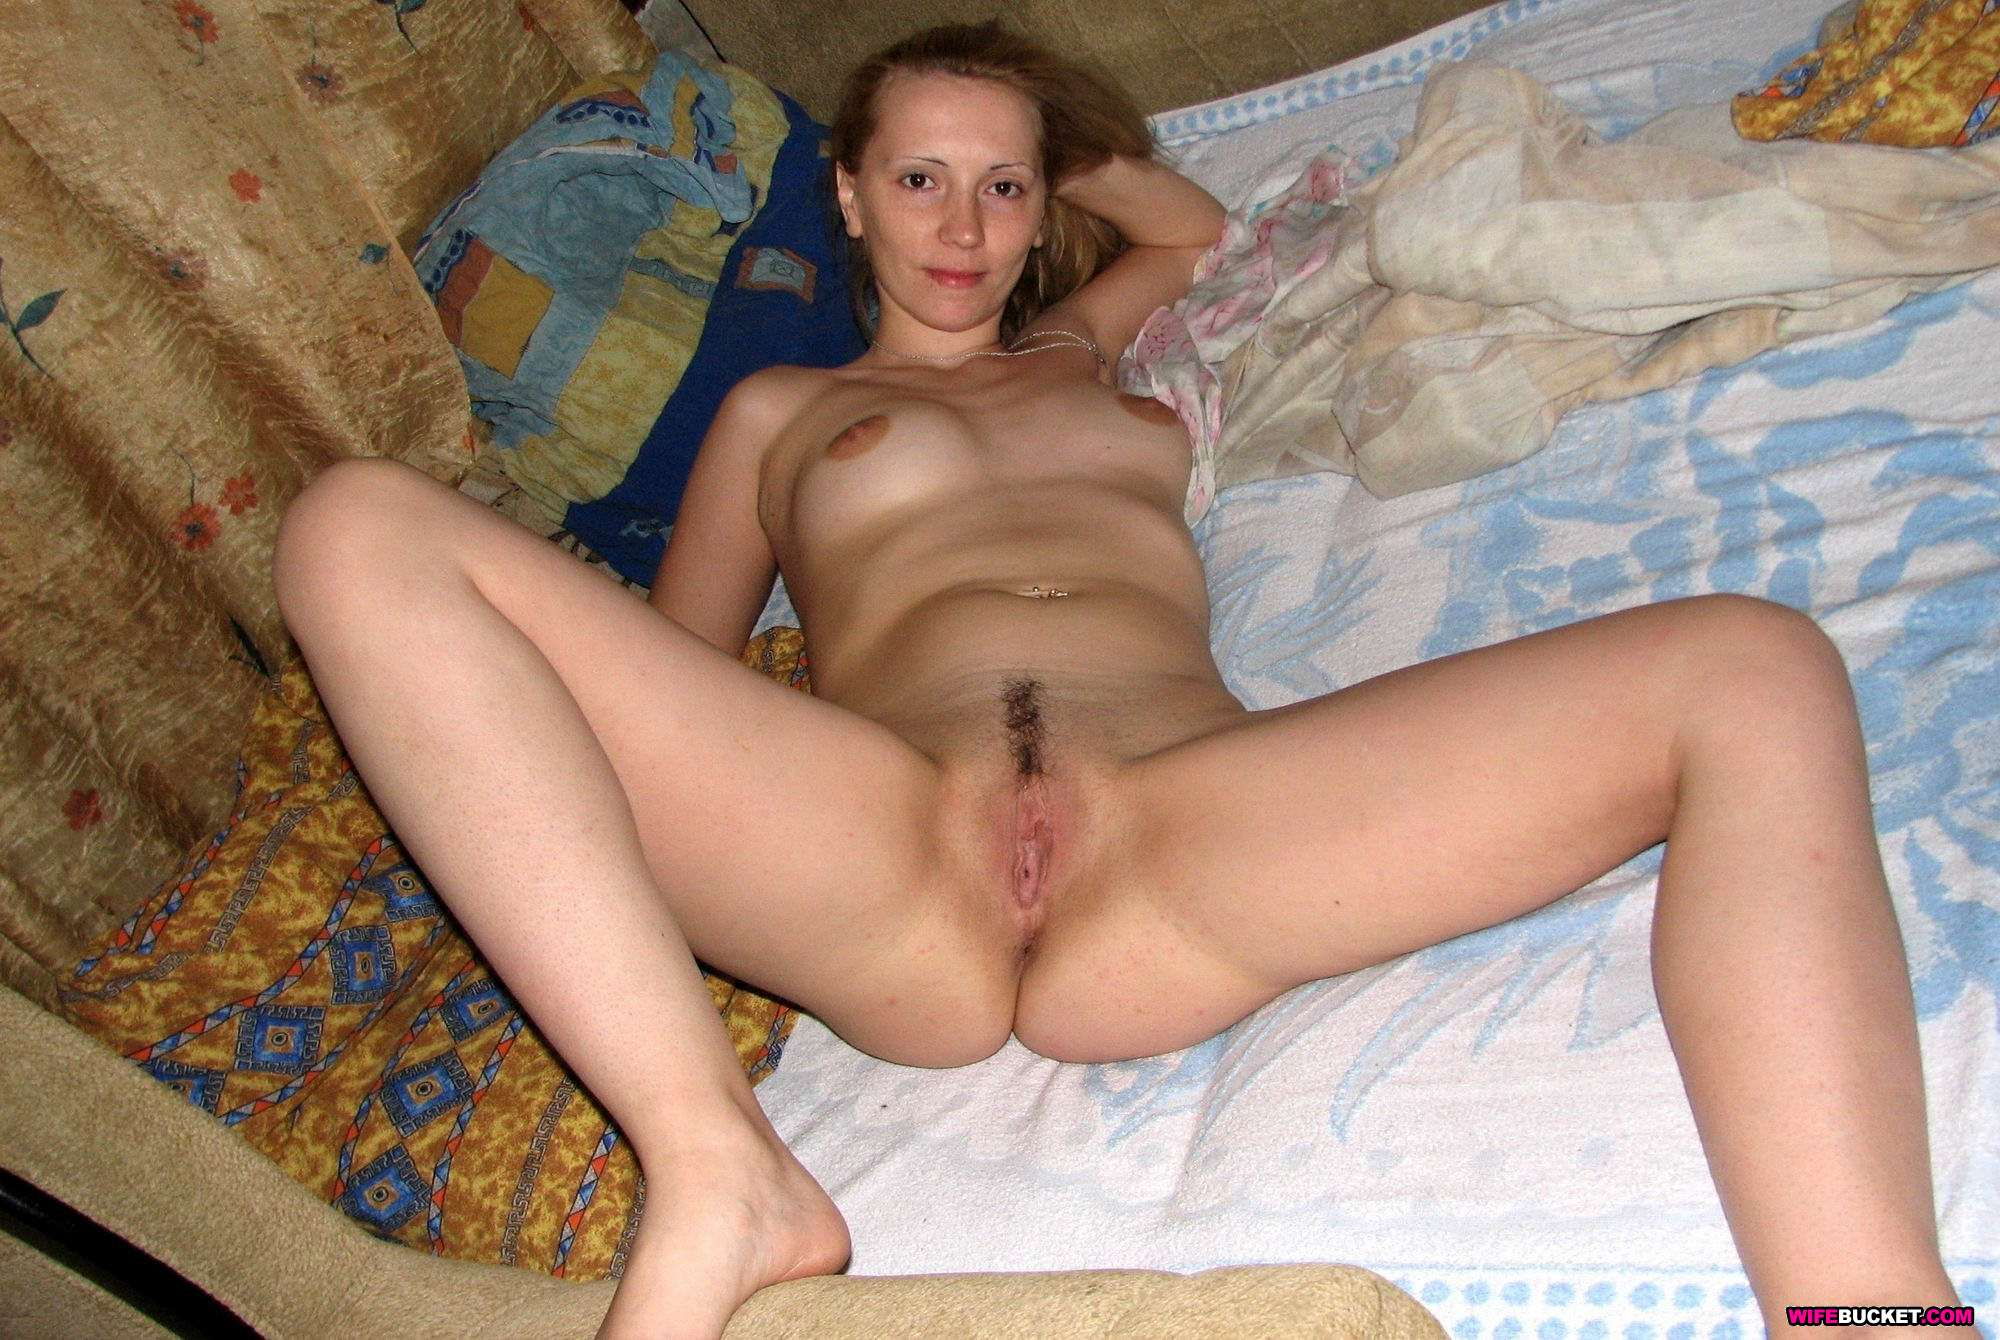 English girl sex photo